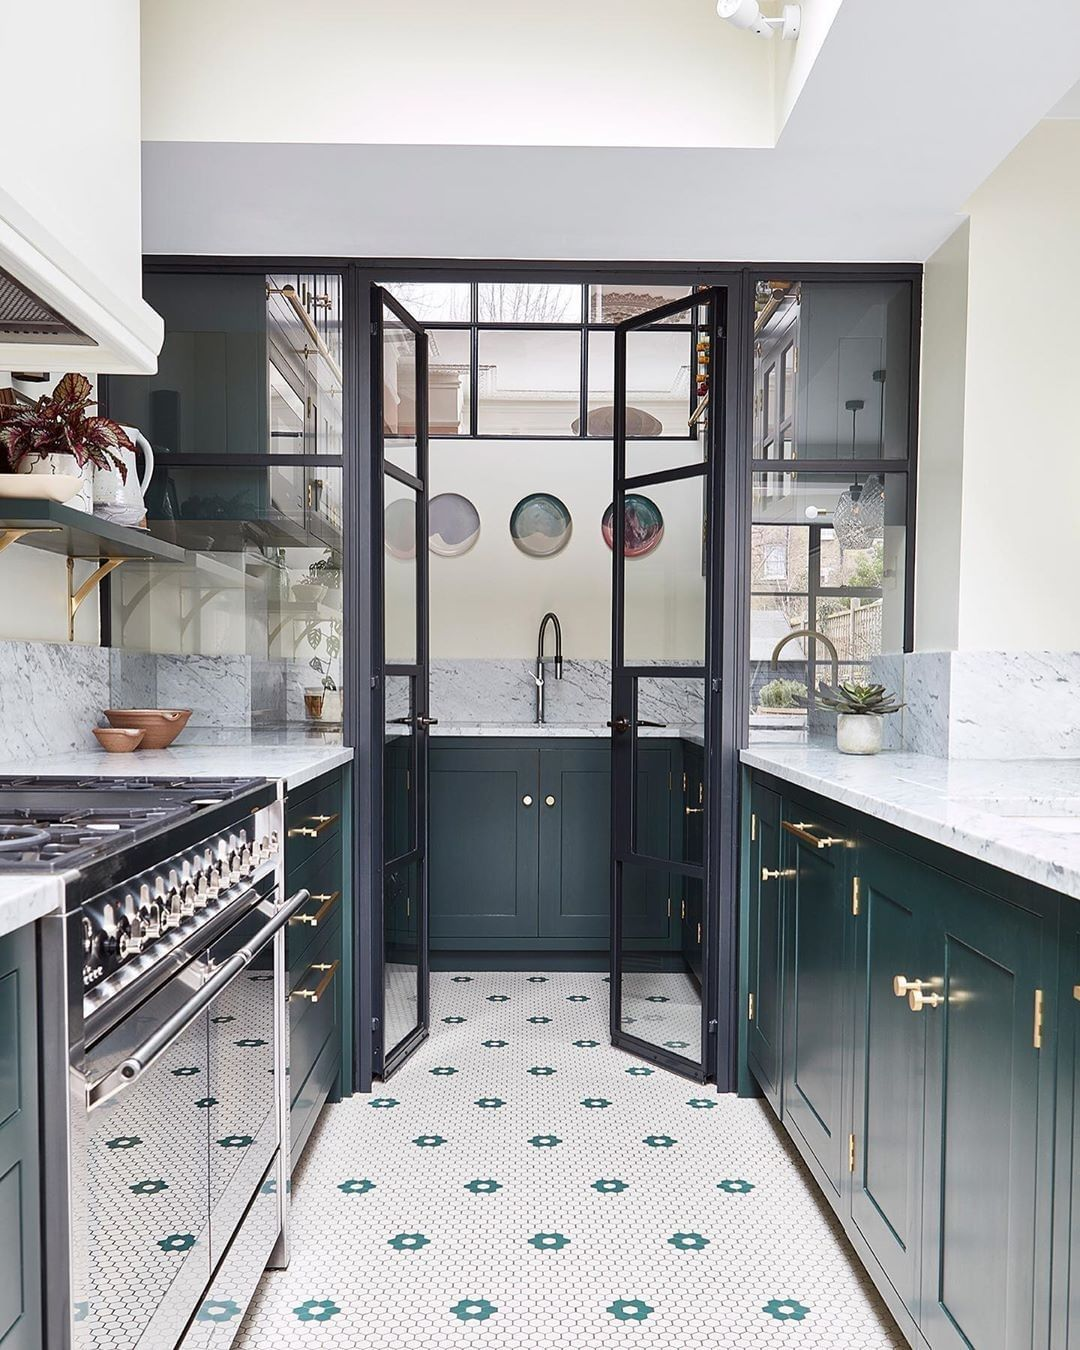 Farrow Ball On Instagram Swooning Over This Contemporary Kitchen Our Tip Coordinate The Colour Of Cabinetry Painted Here In Studiogreen With Floor Tili I 2020